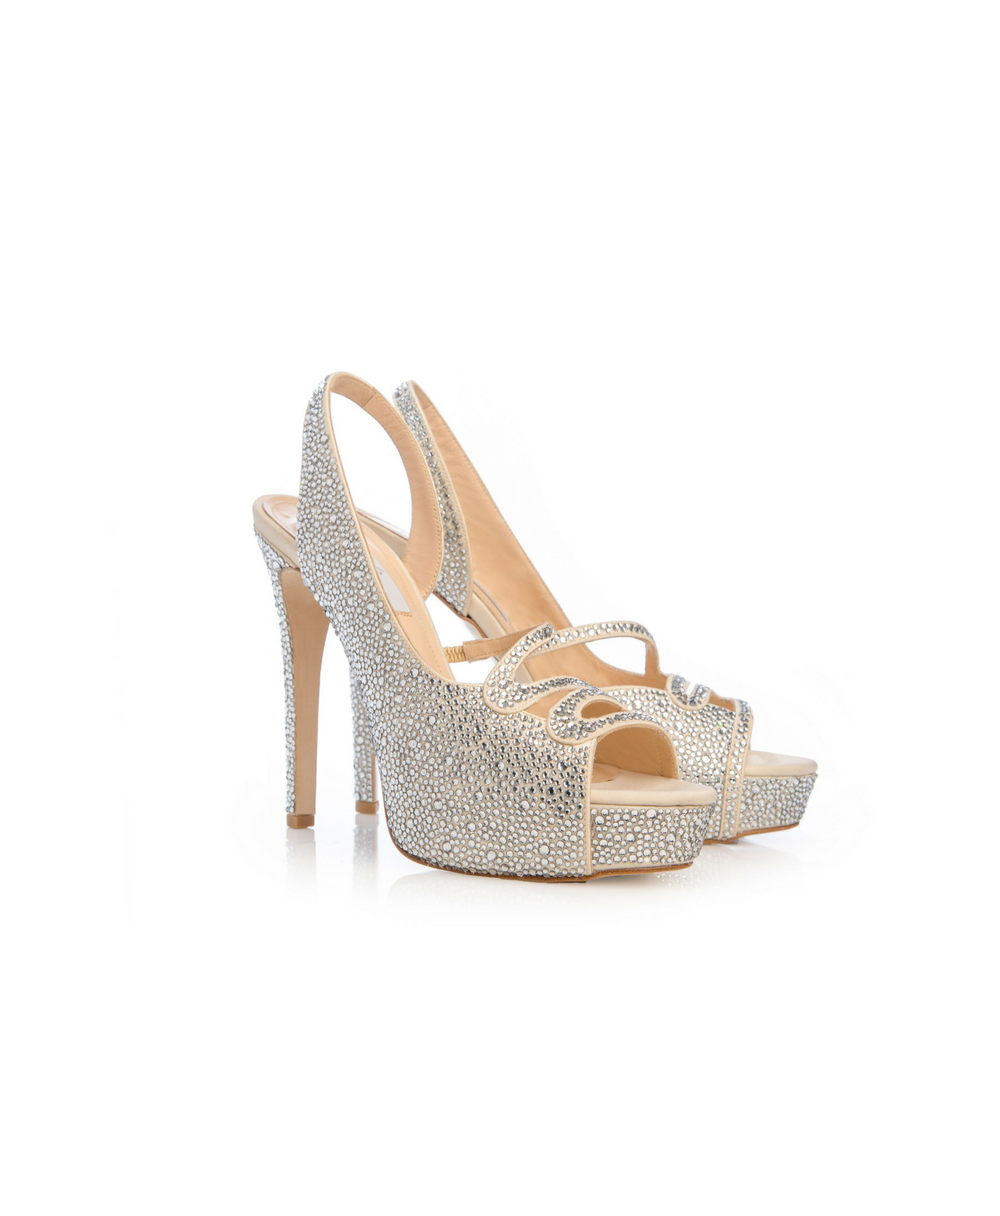 Bridal High Heel Peep Toe Slingbacks Fully Covered With Swarovski Crystalls Mod.2565